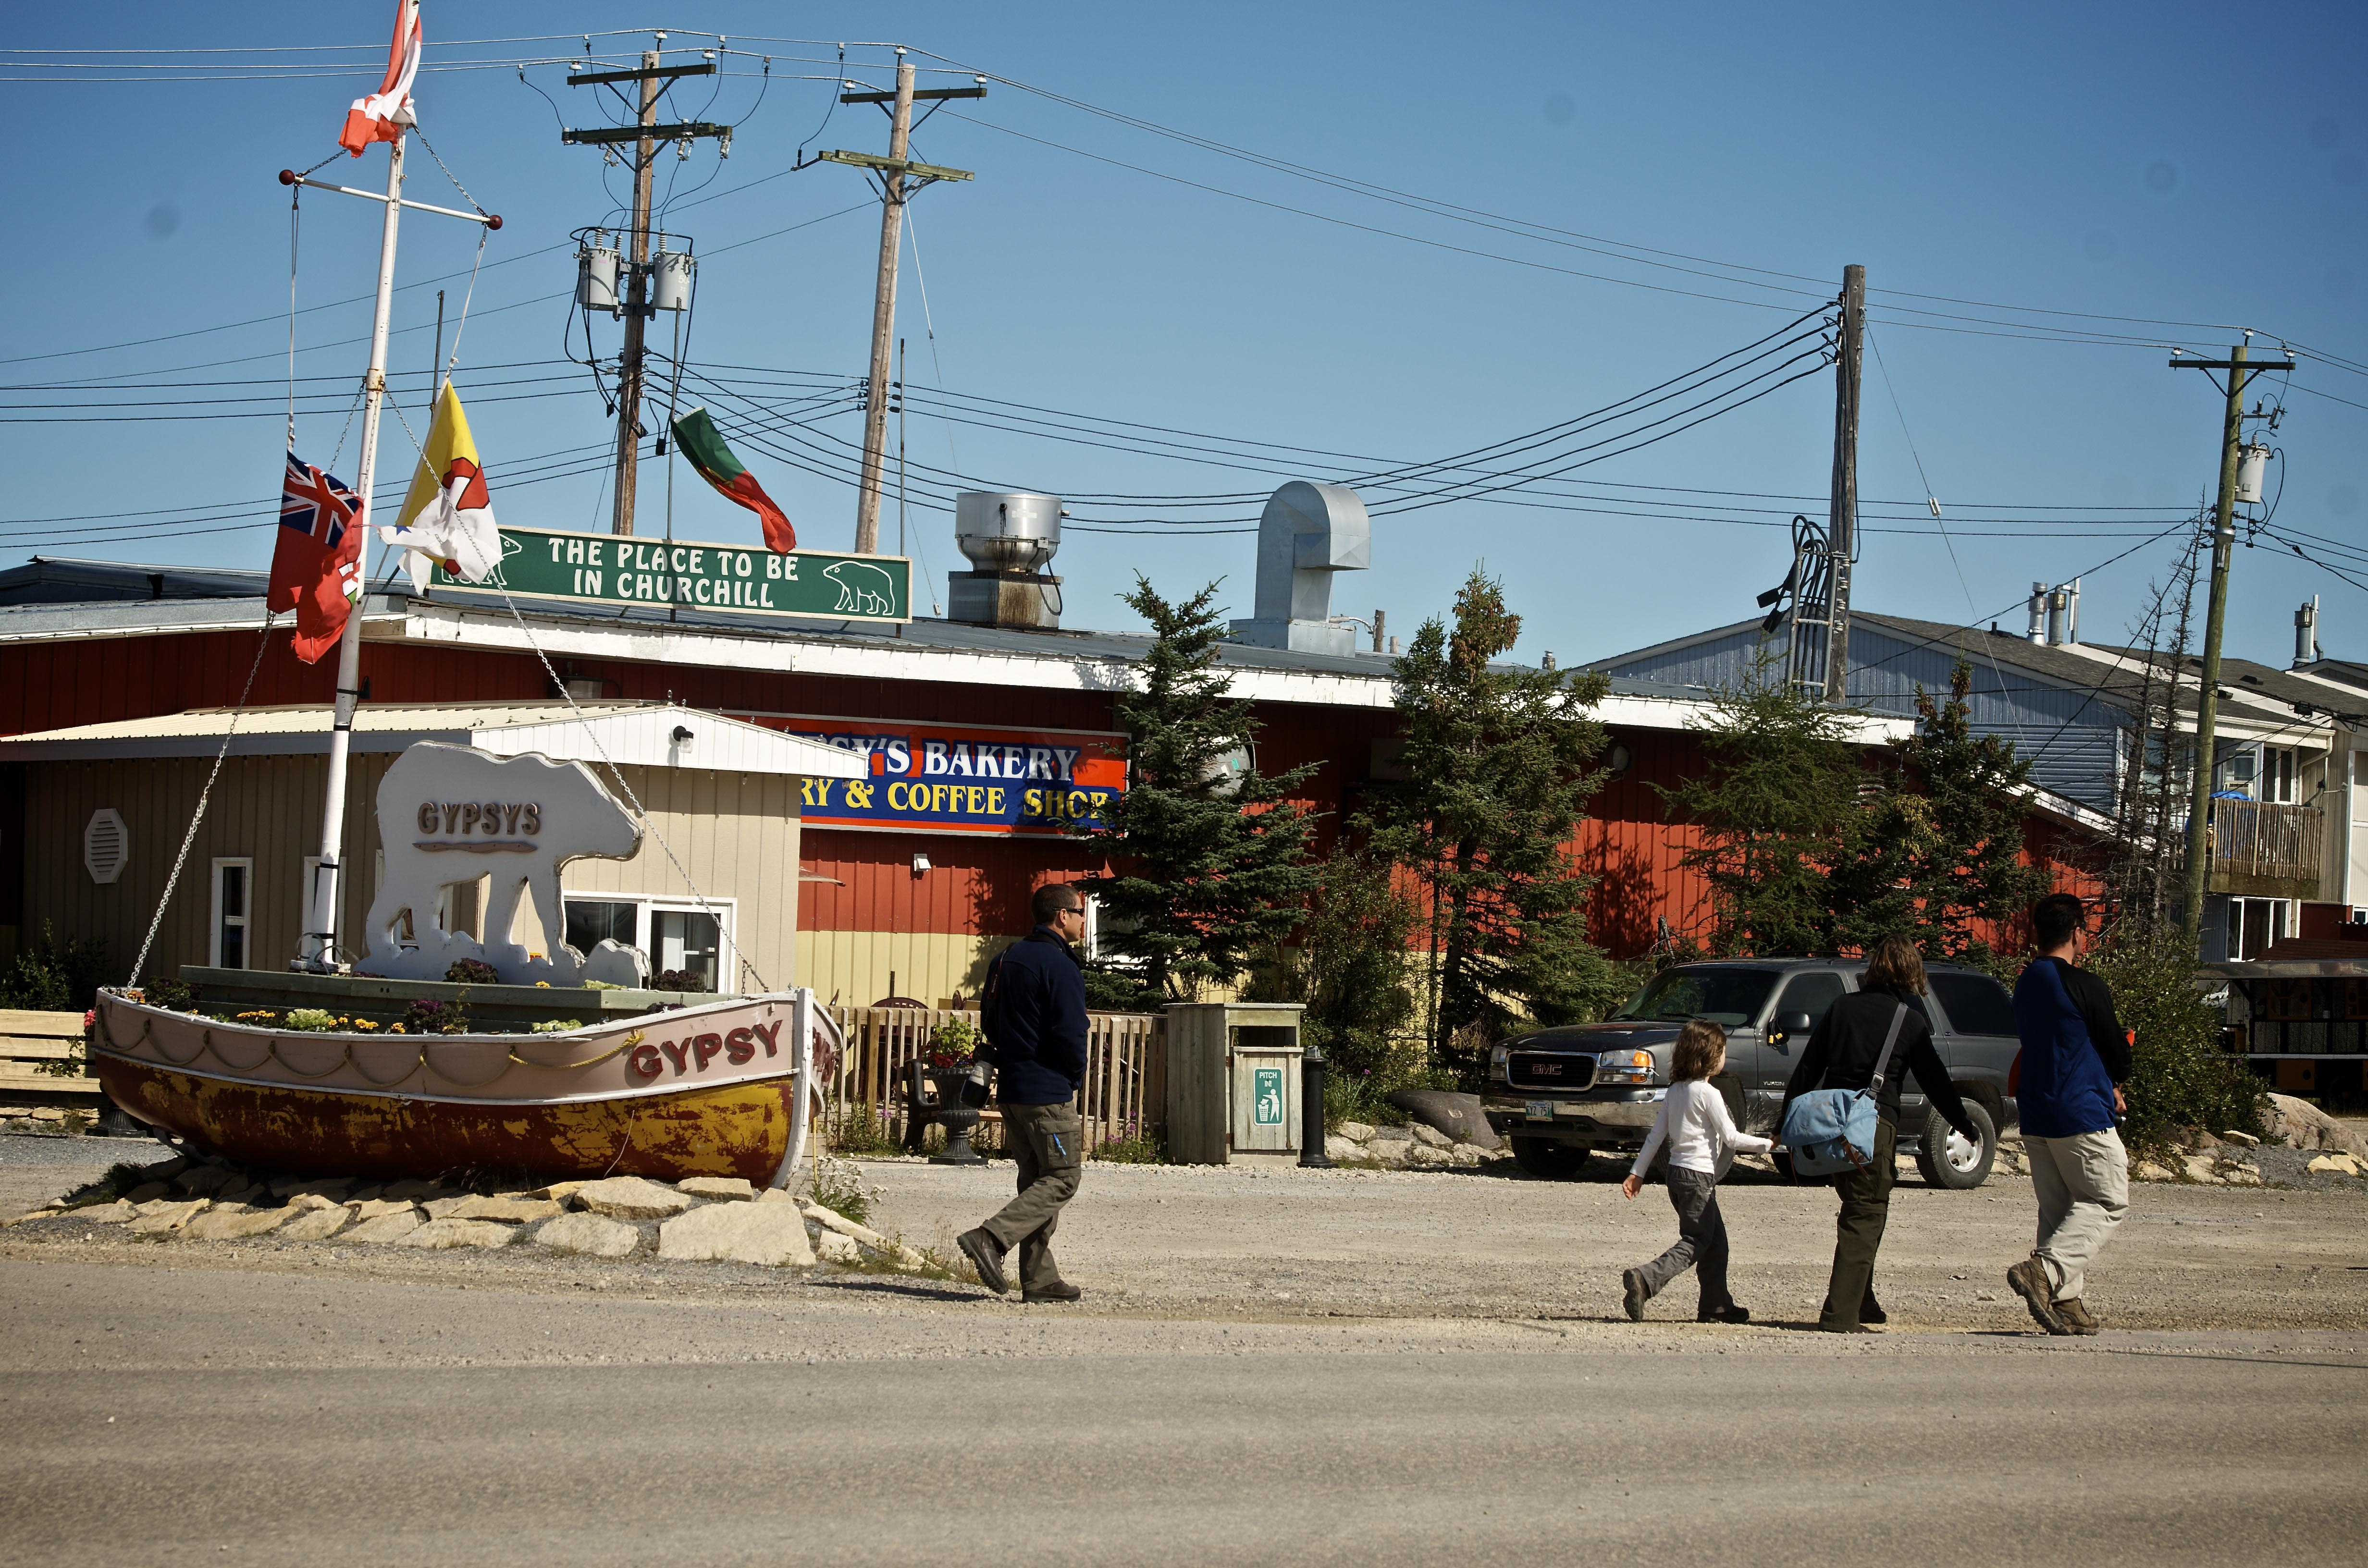 The town of Churchill, Manitoba